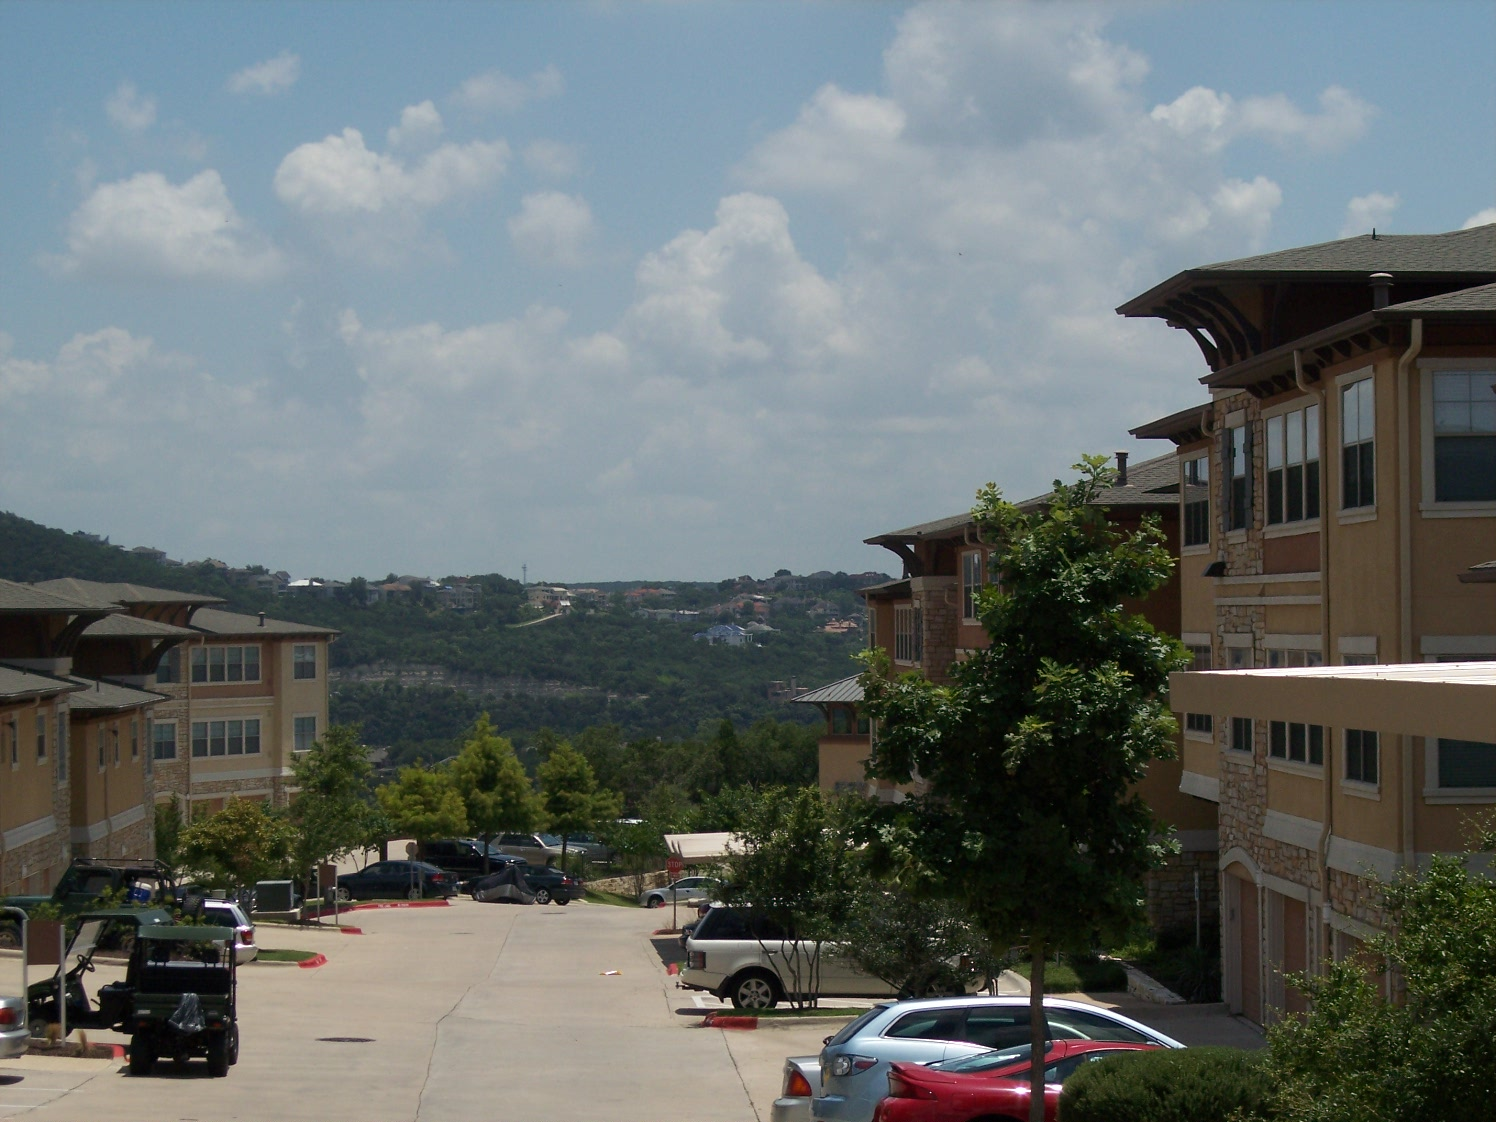 Loop 360 Apartments - if you always wanted to live in the hills this is your chance! Many units have unbelievable views!